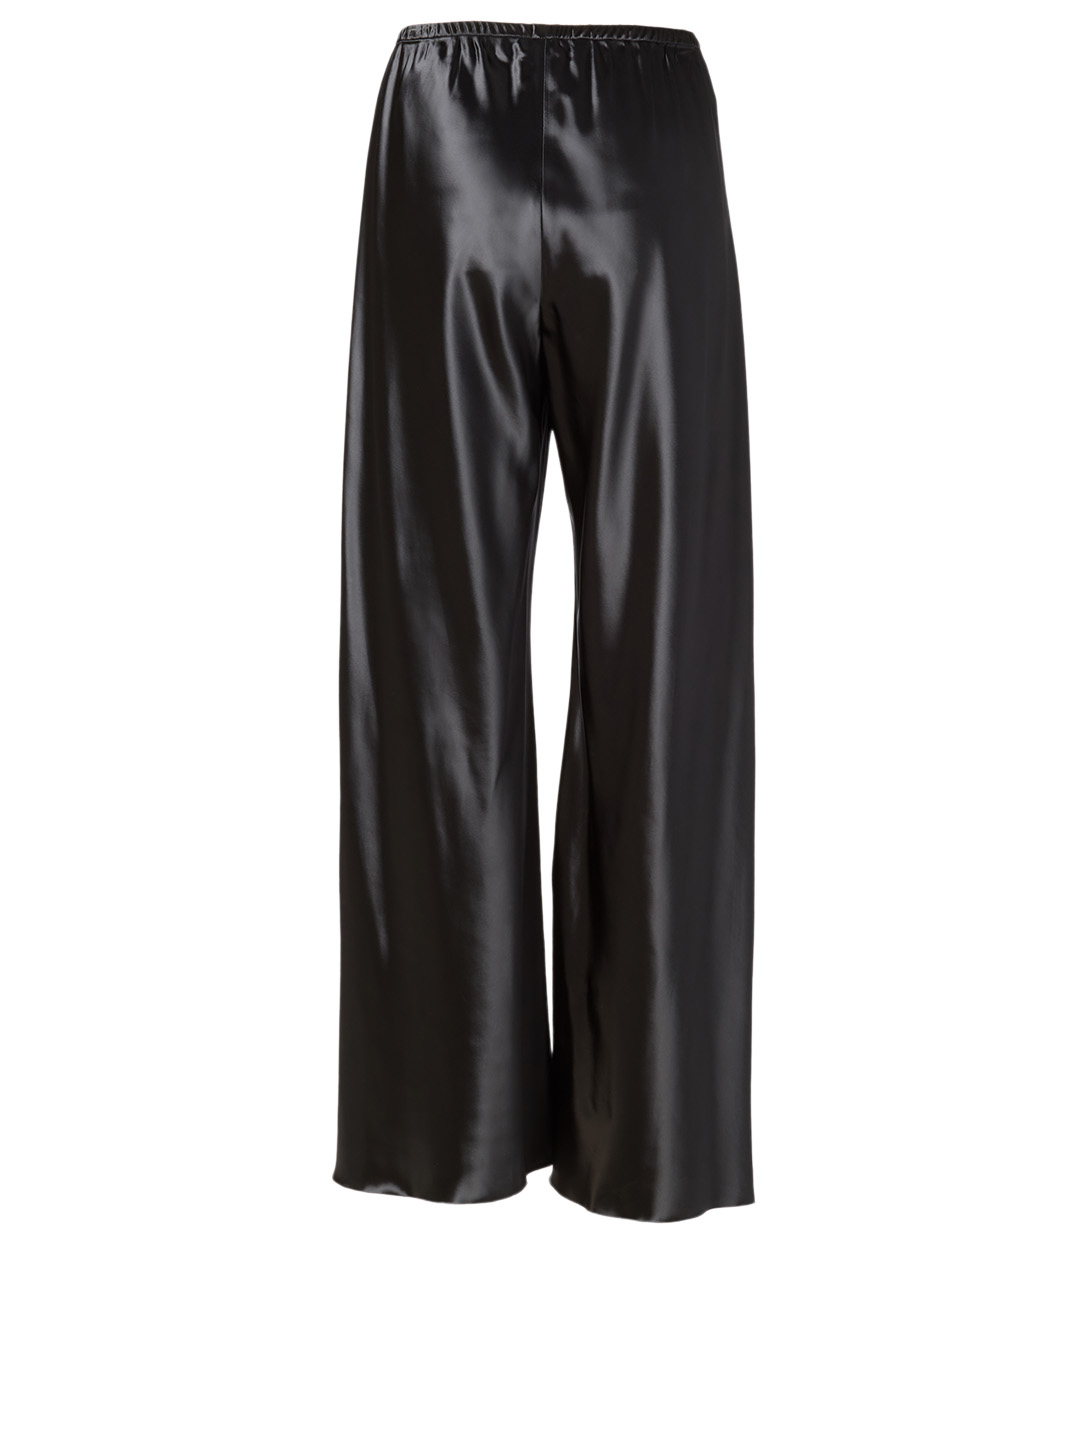 THE ROW Gala Shiny Pants Women's Blue